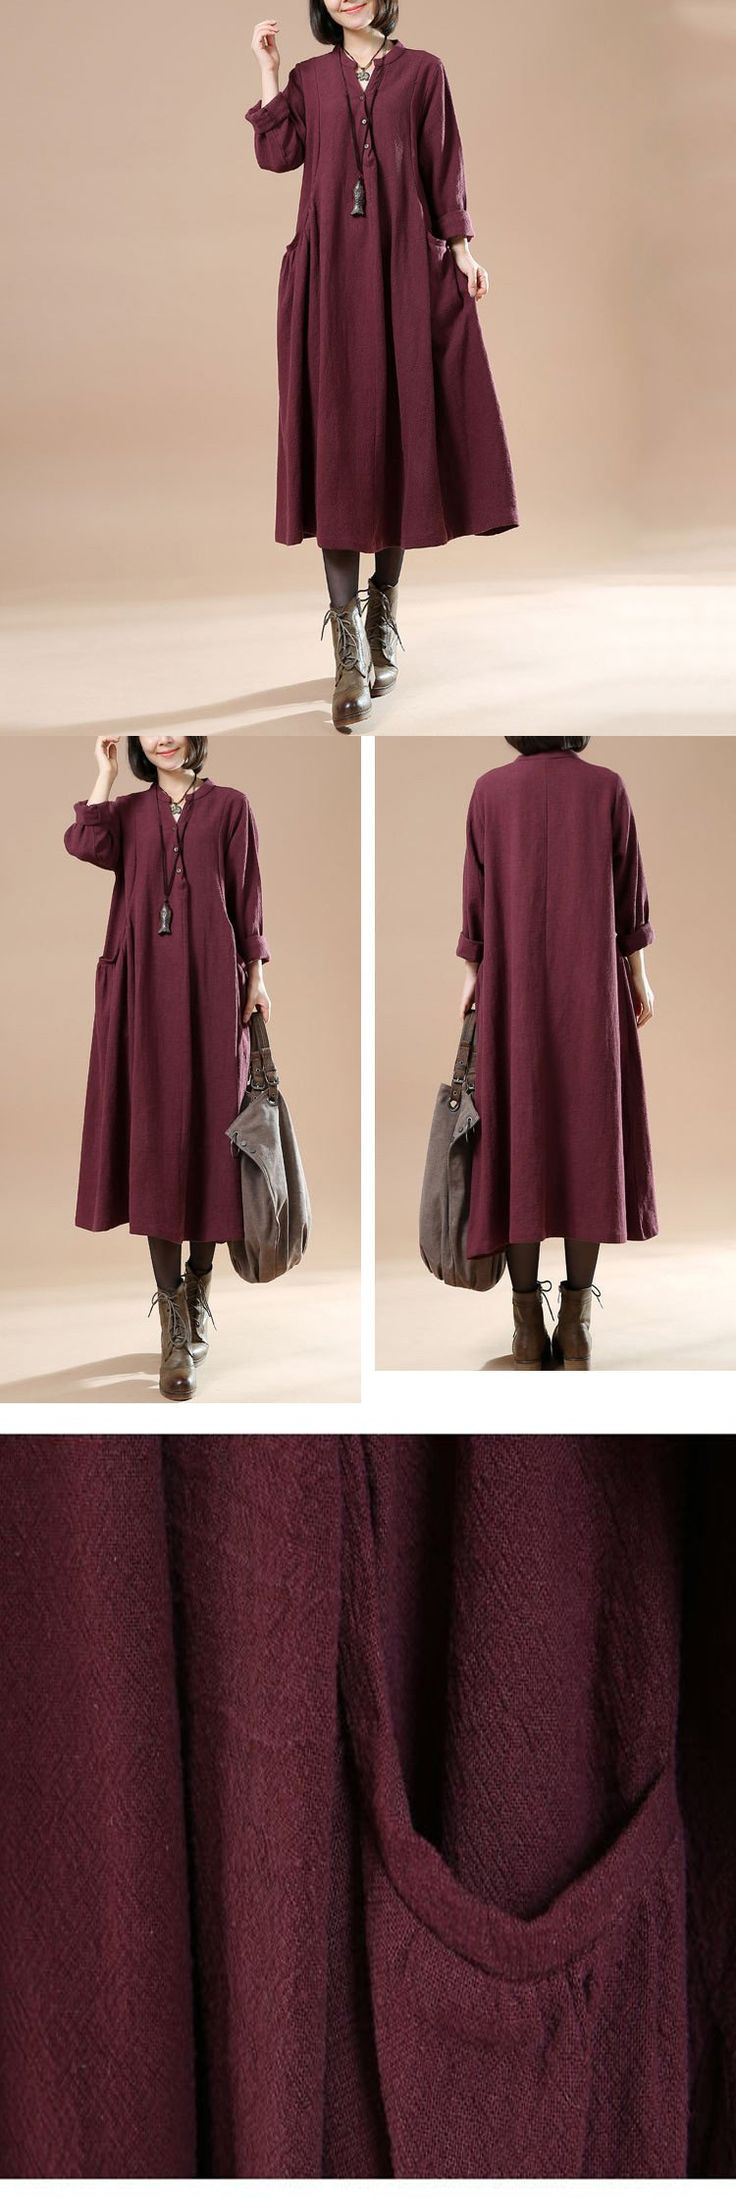 Autumn Large Size Women's Casual Long Sleeve Cotton Linen Dress